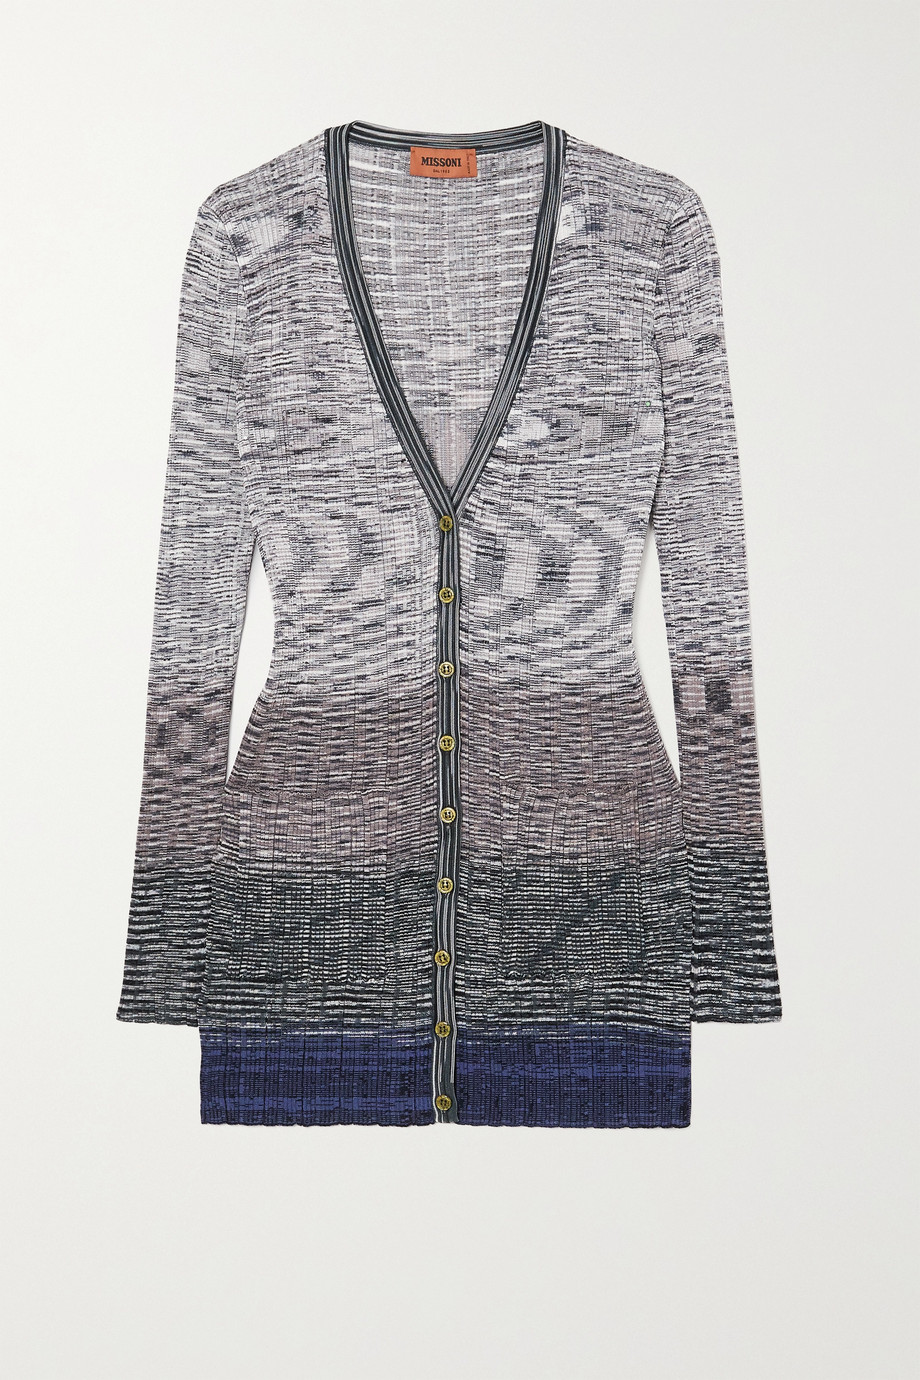 Missoni Cardigan aus geripptem Häkelstrick in Space-Dye-Optik